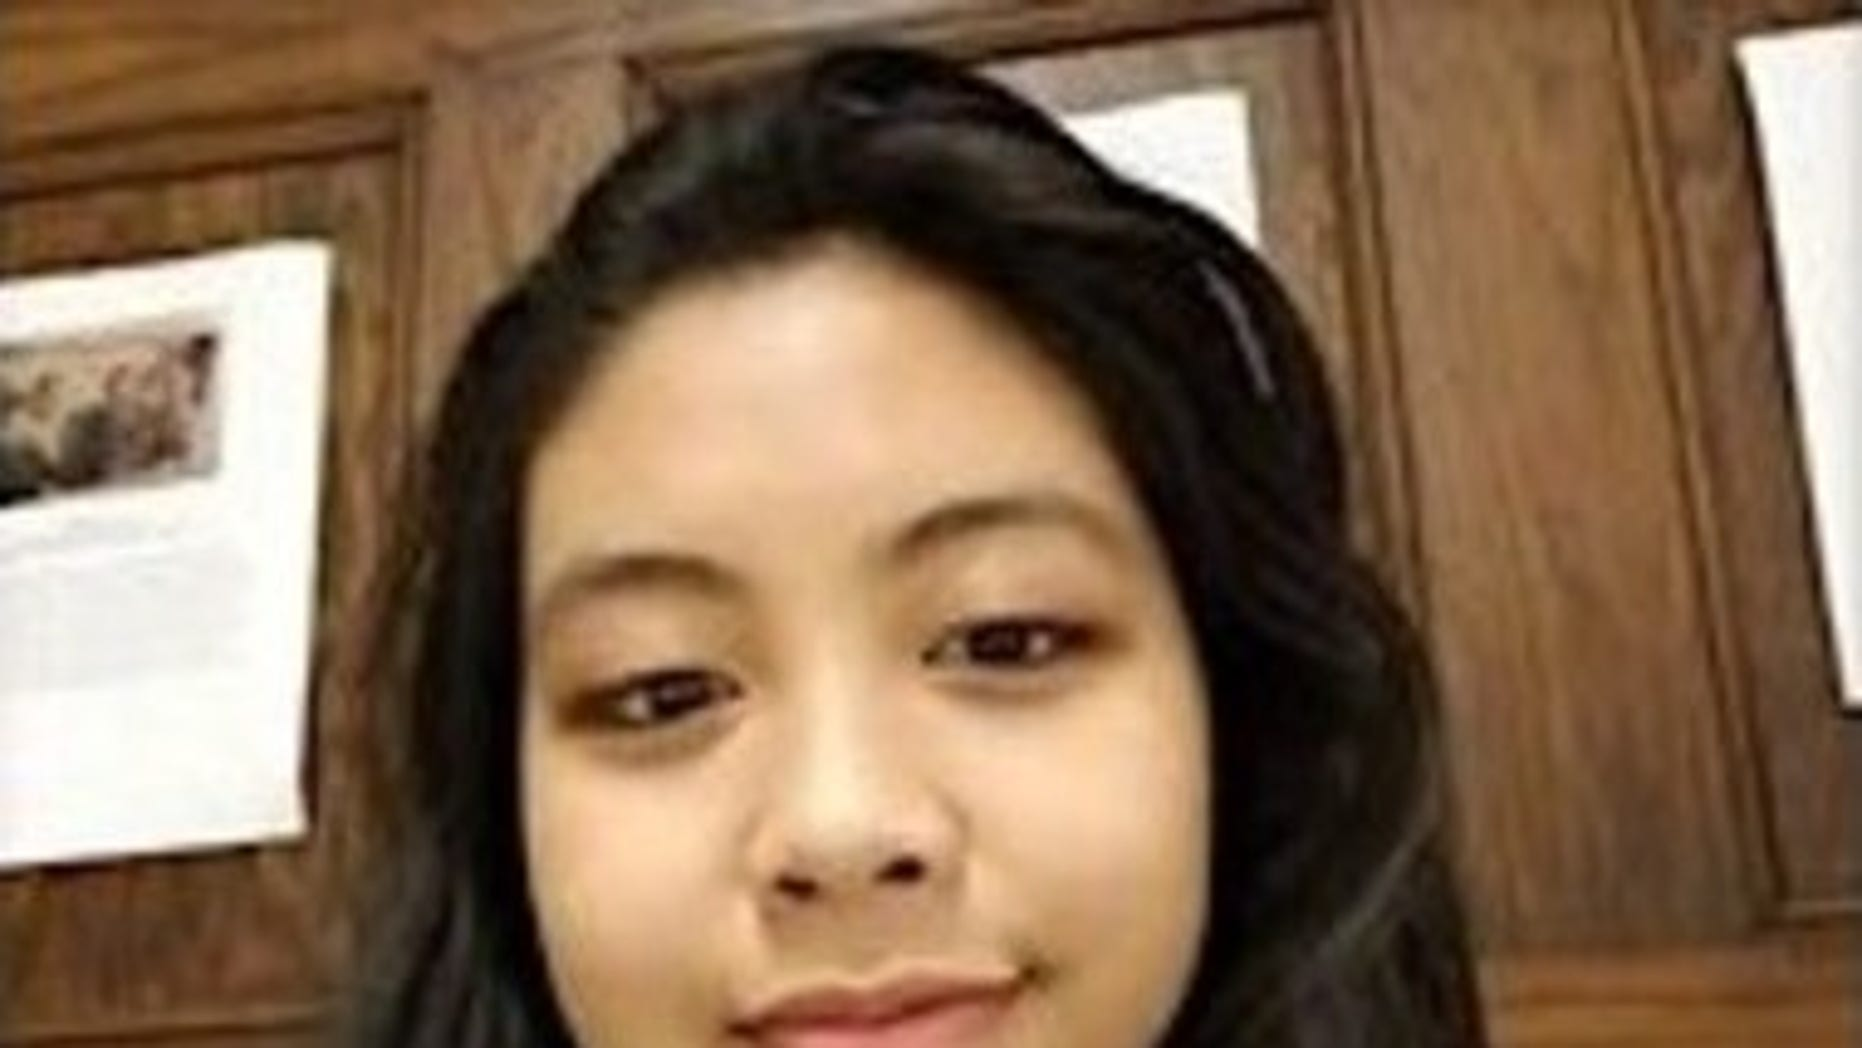 Shalyha Ahmad, 18, was last seen about two weeks ago when her parents dropped her off at a train station.